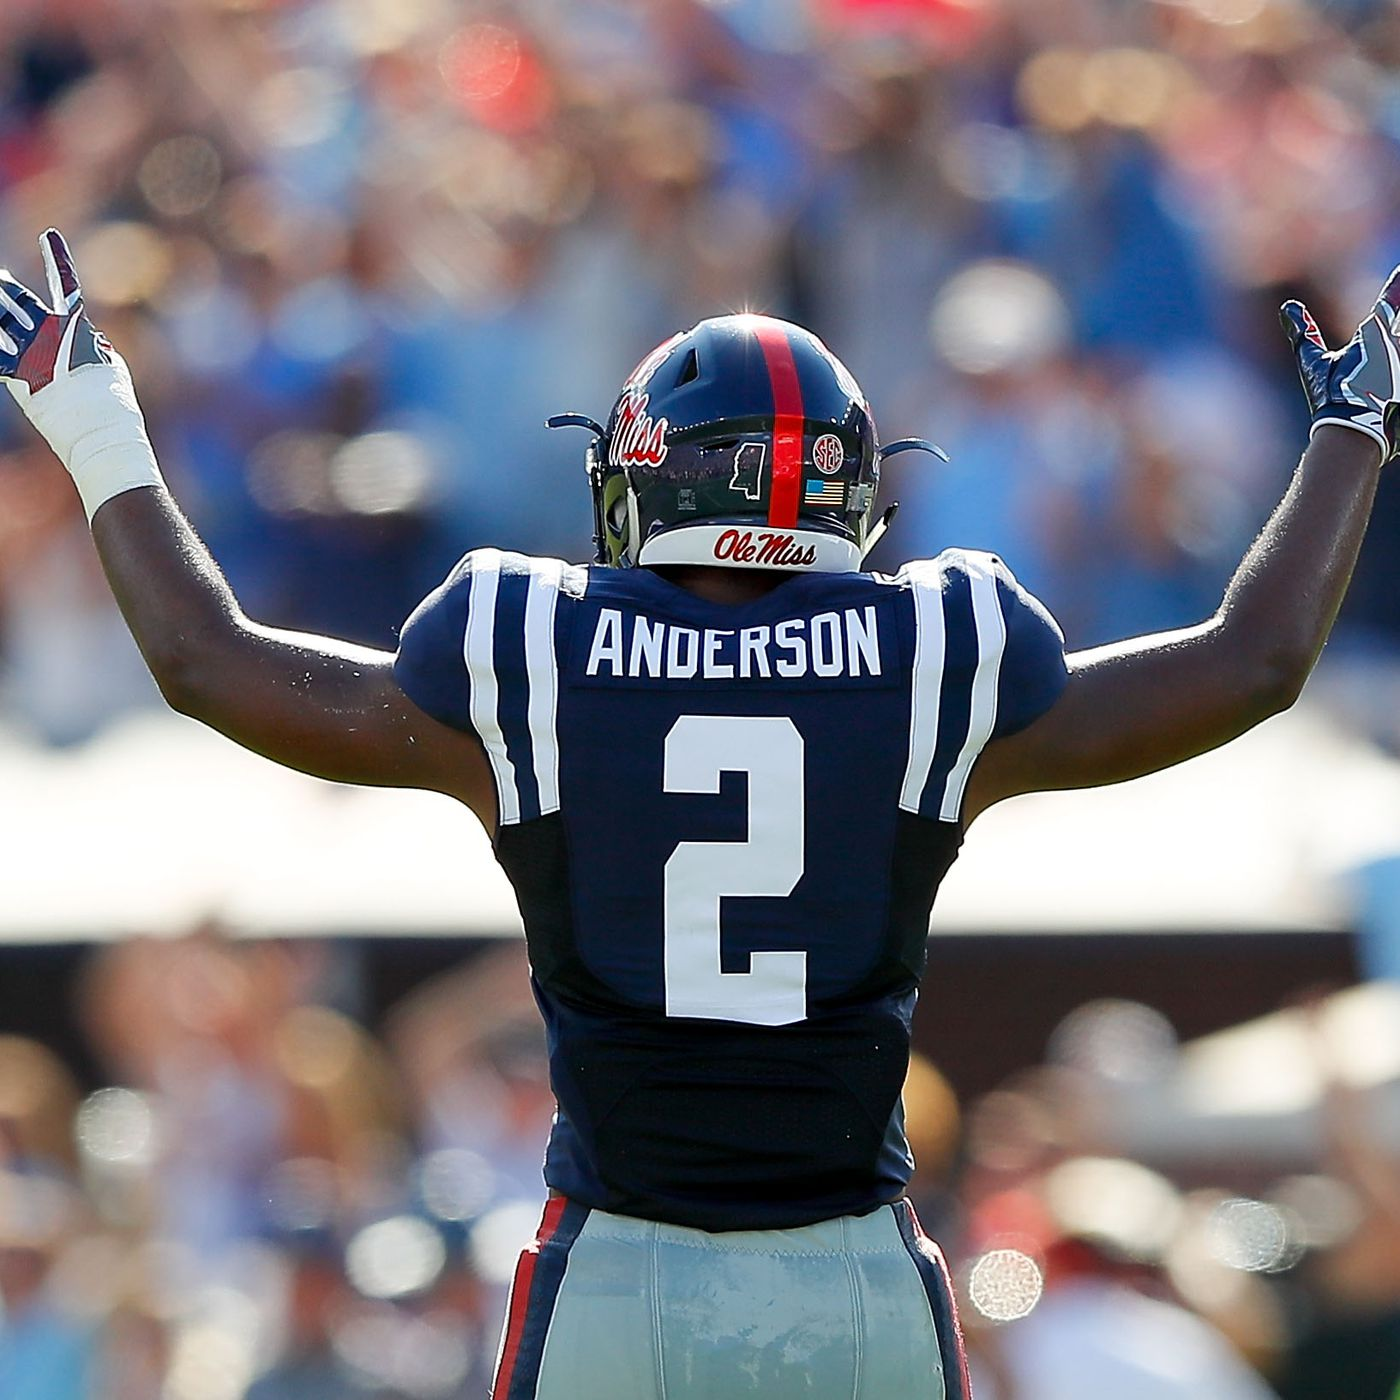 Former Ole Miss safety Deontay Anderson transfers to Houston Underdog Dynasty